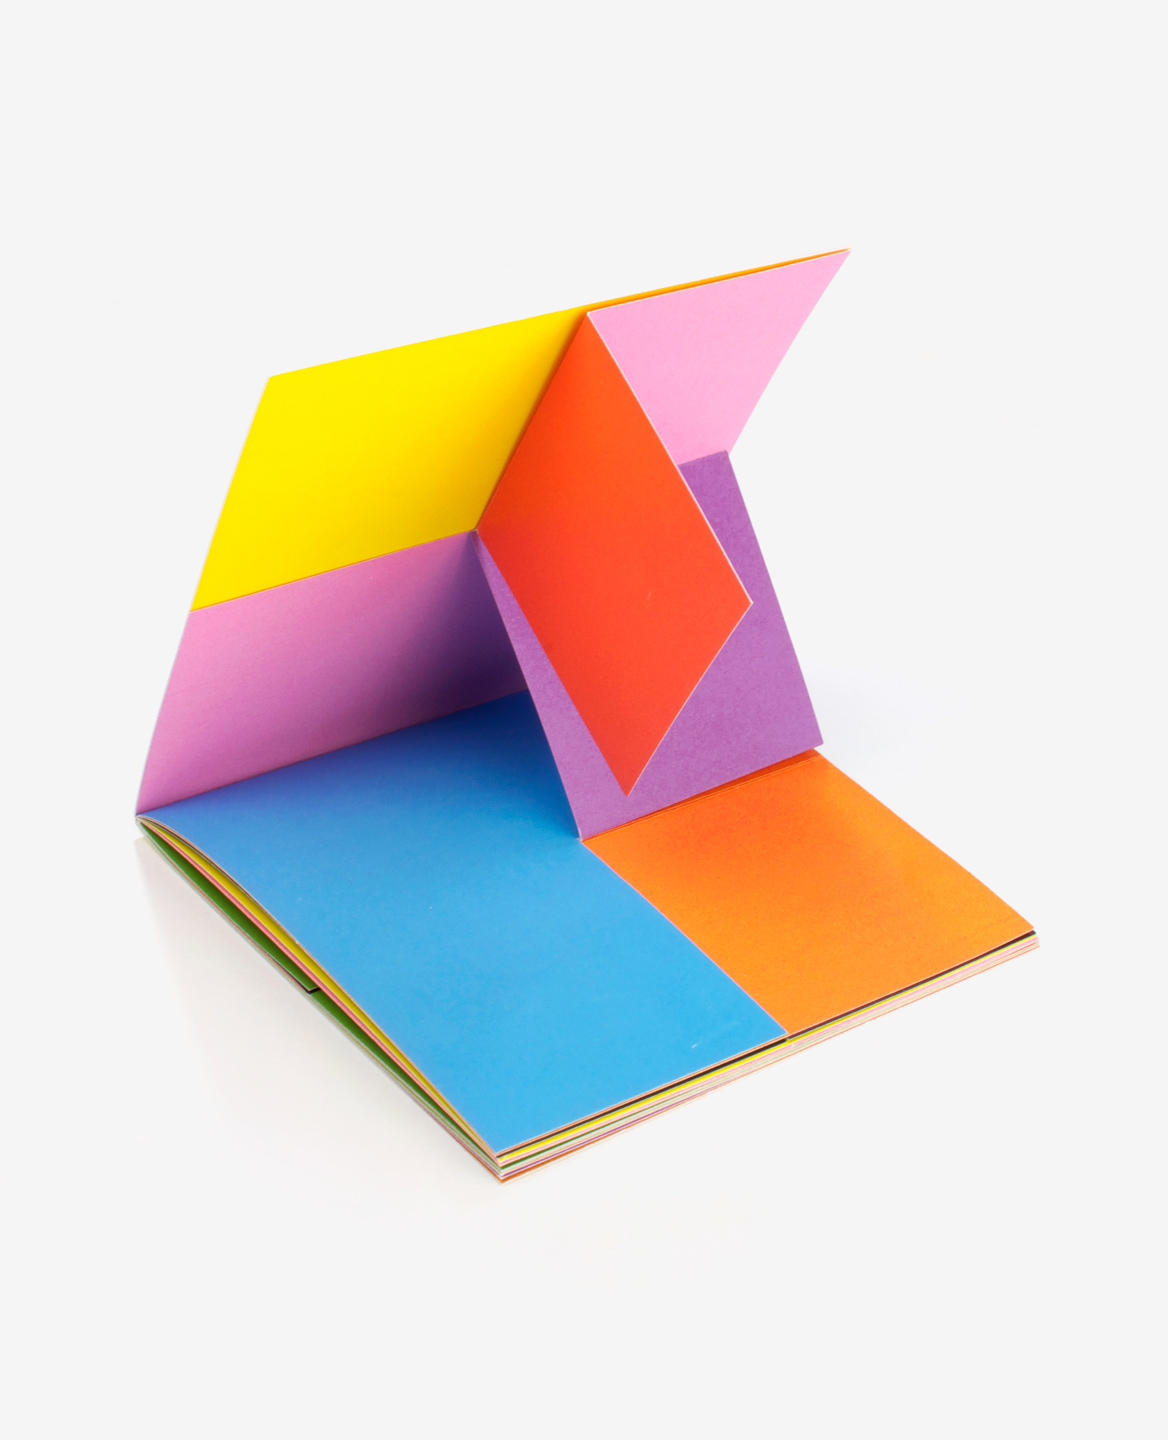 3D view of the book Colors by Antonio Ladrillo published by Éditions du livre